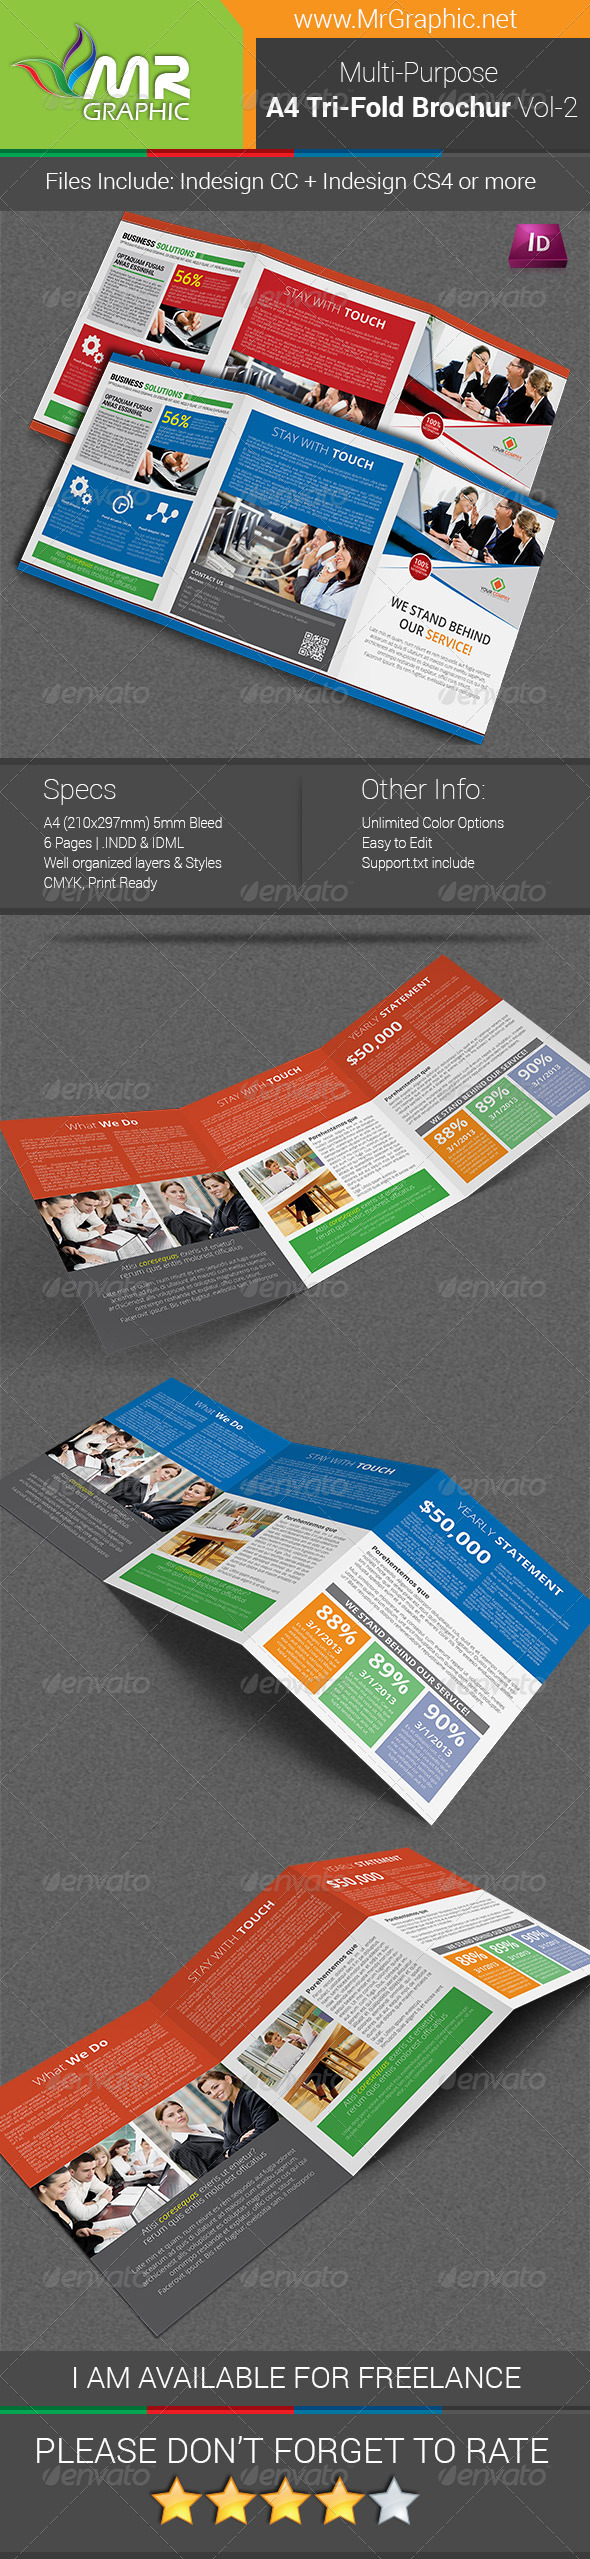 Multipurpose A4 Tri-Fold Brochure Template Vol-2